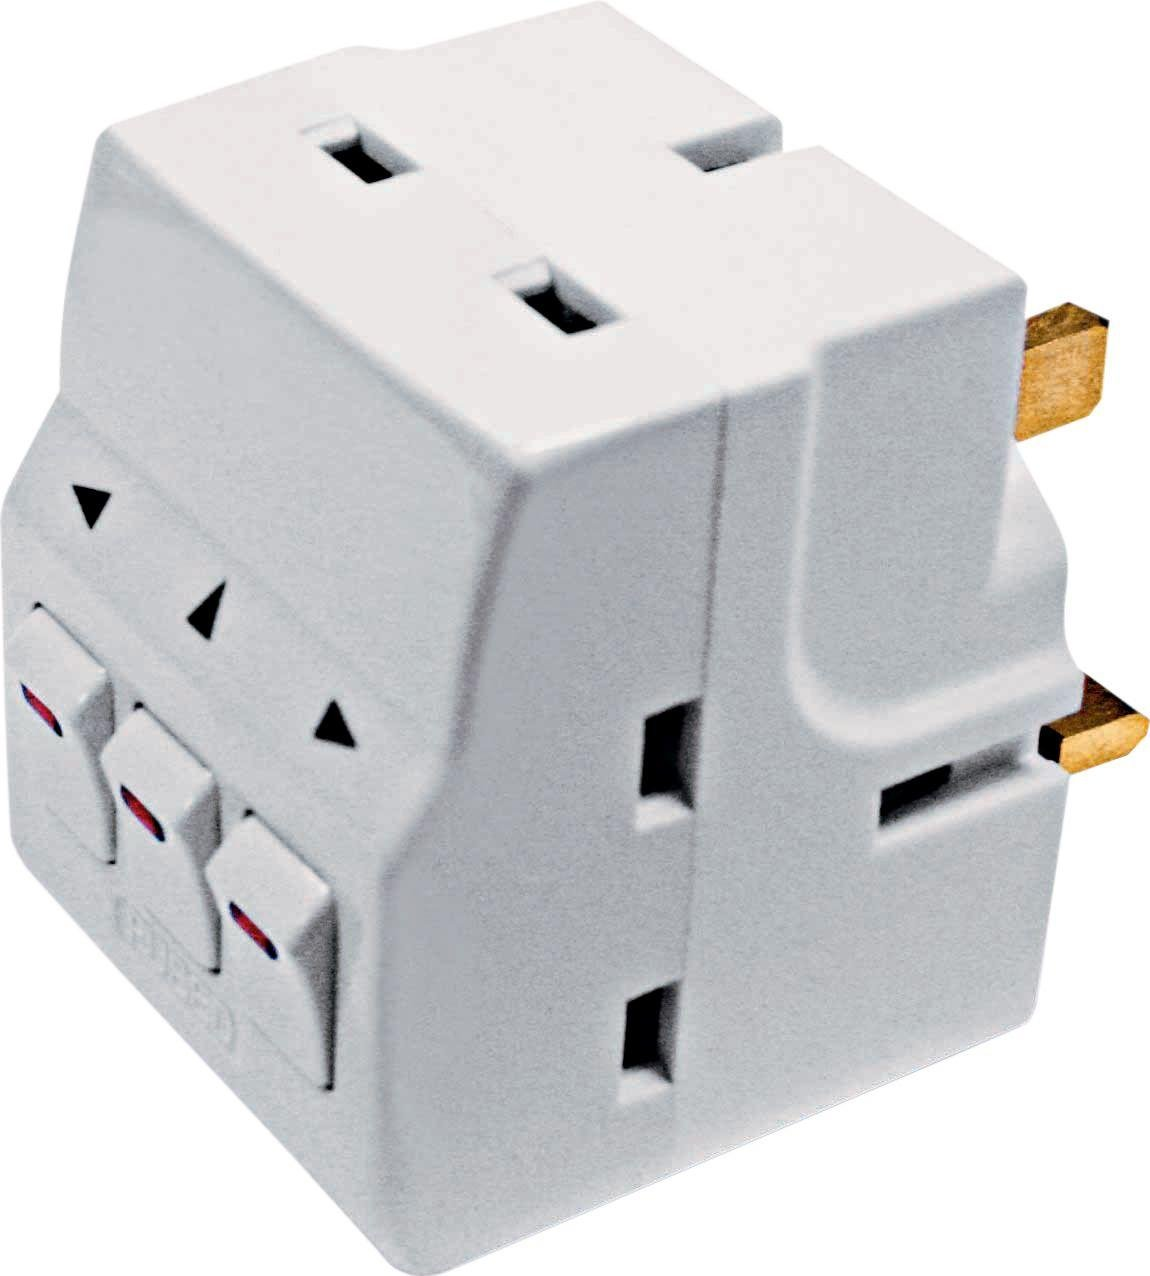 Masterplug - 3-Way Individually Switched Adaptor Review